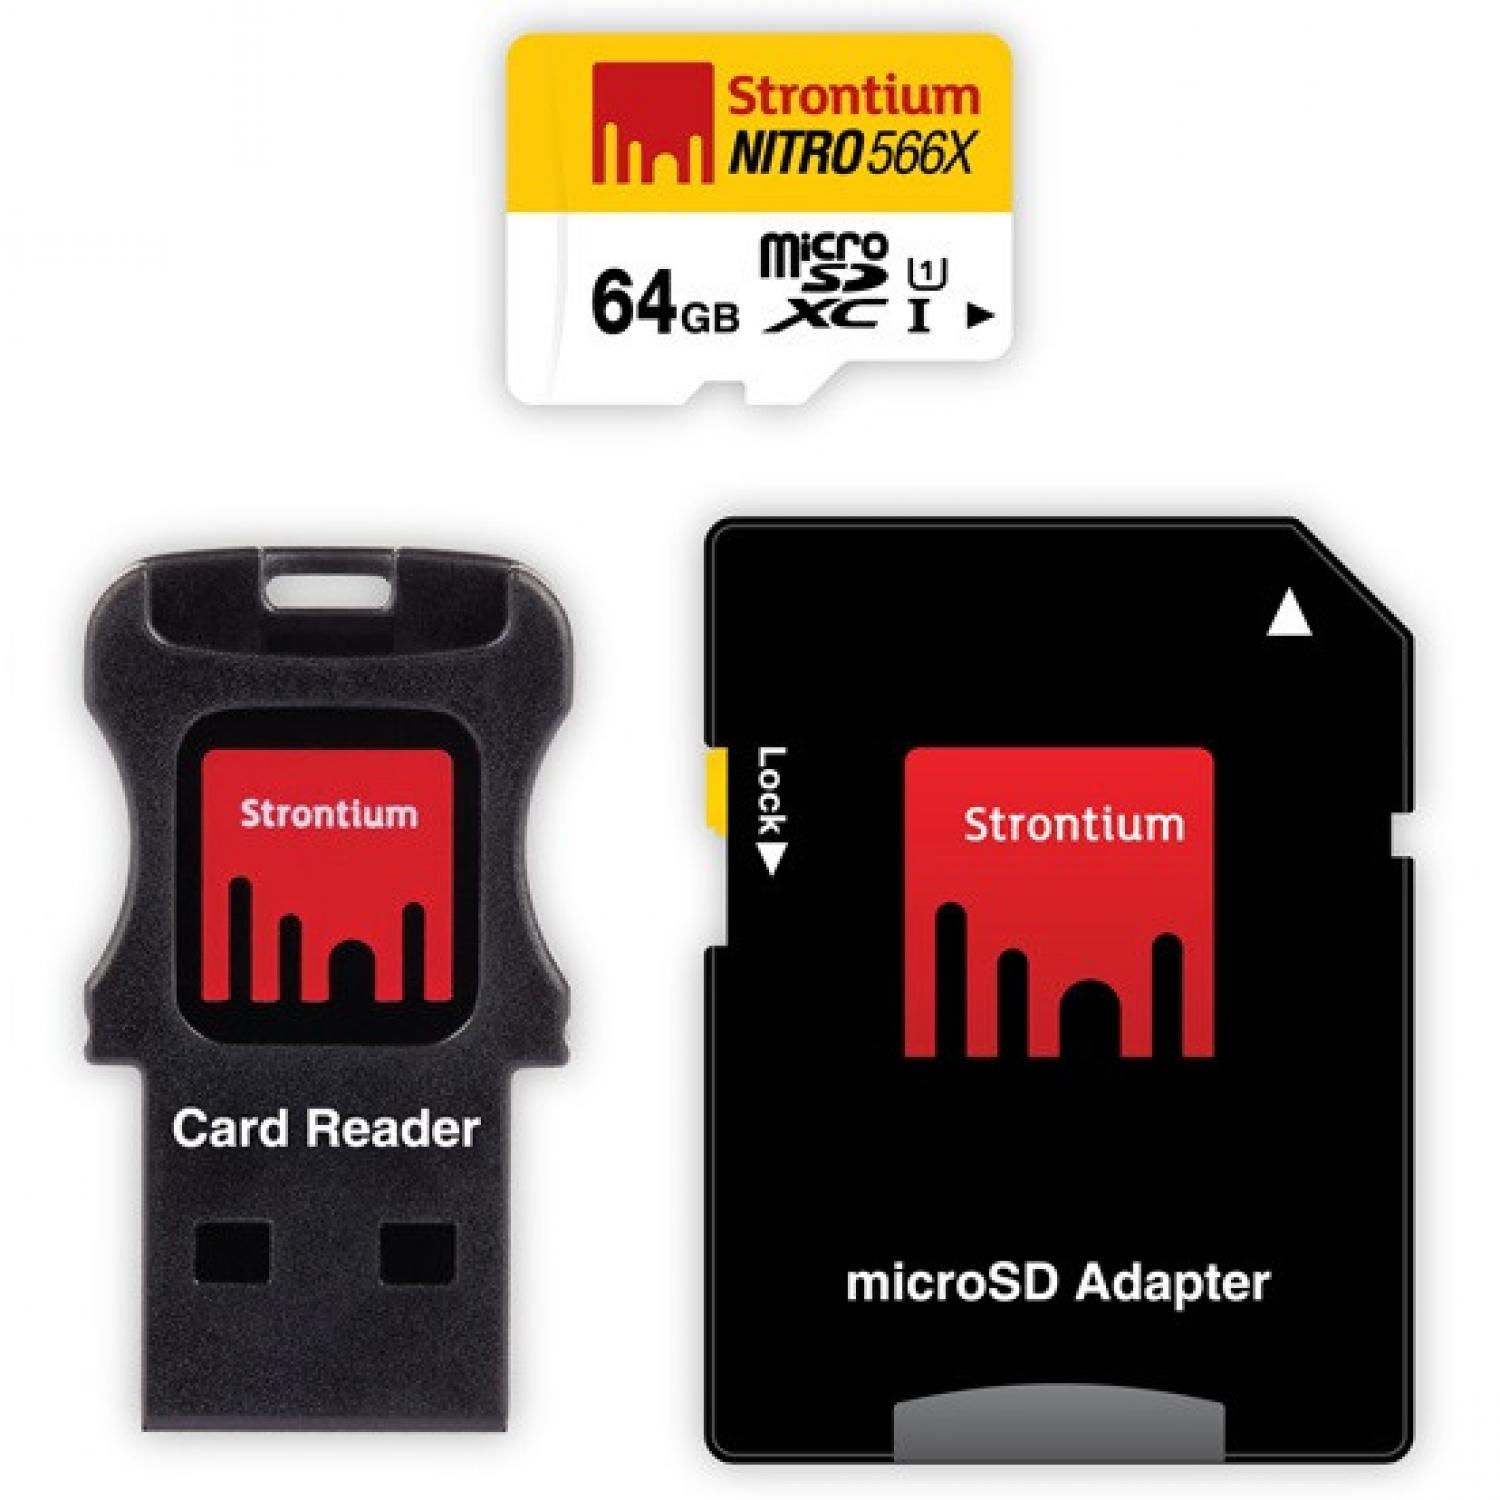 Strontium Nitro 566X MicroSDXC Class 10 with Adapter and Card Reader